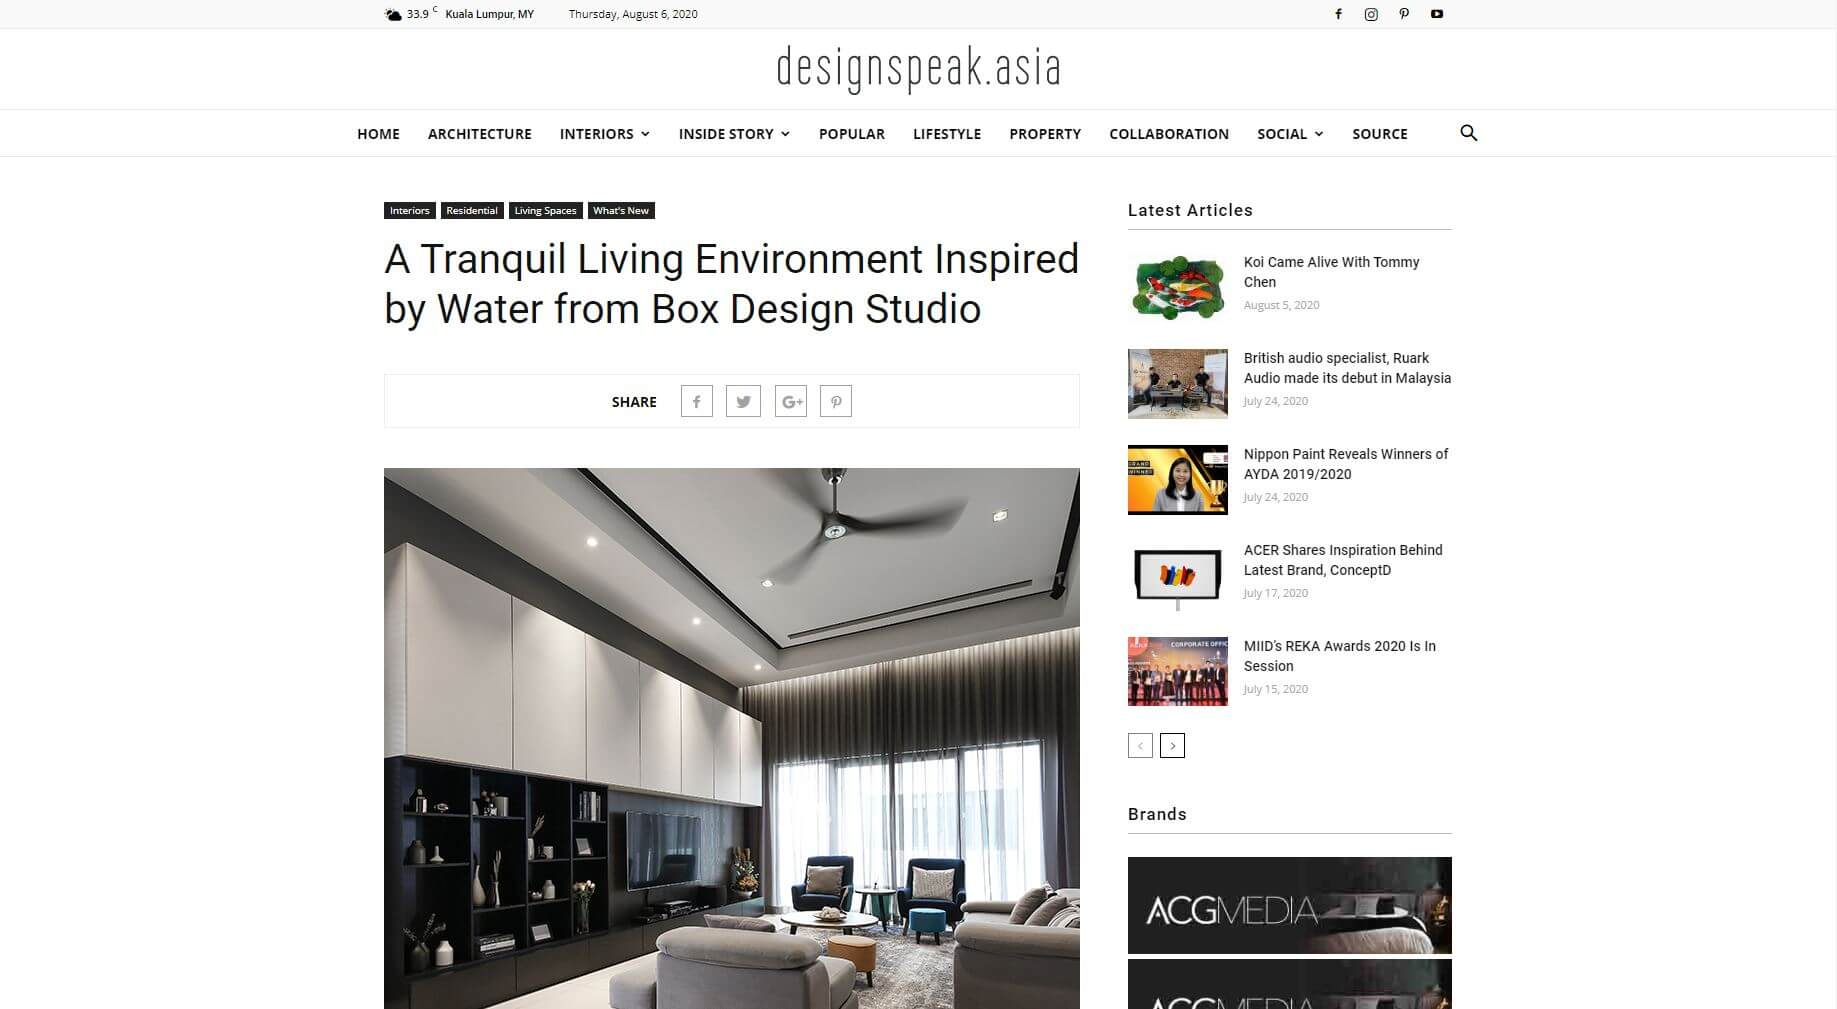 A Tranquil Living Environment Inspired by Water from Box Design Studio, December 2018